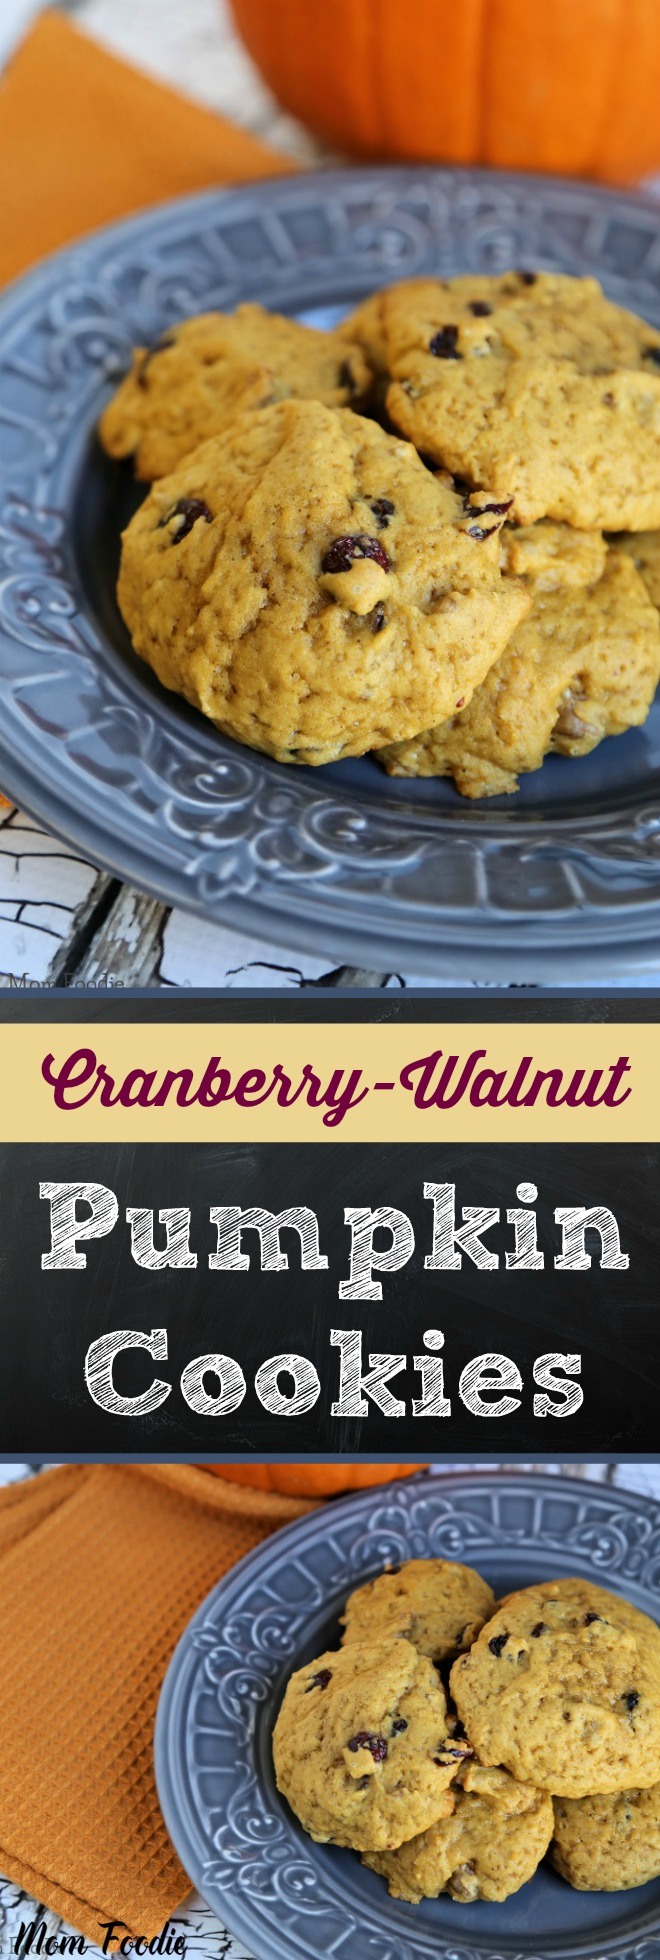 Cranberry Walnut Pumpkin Cookies